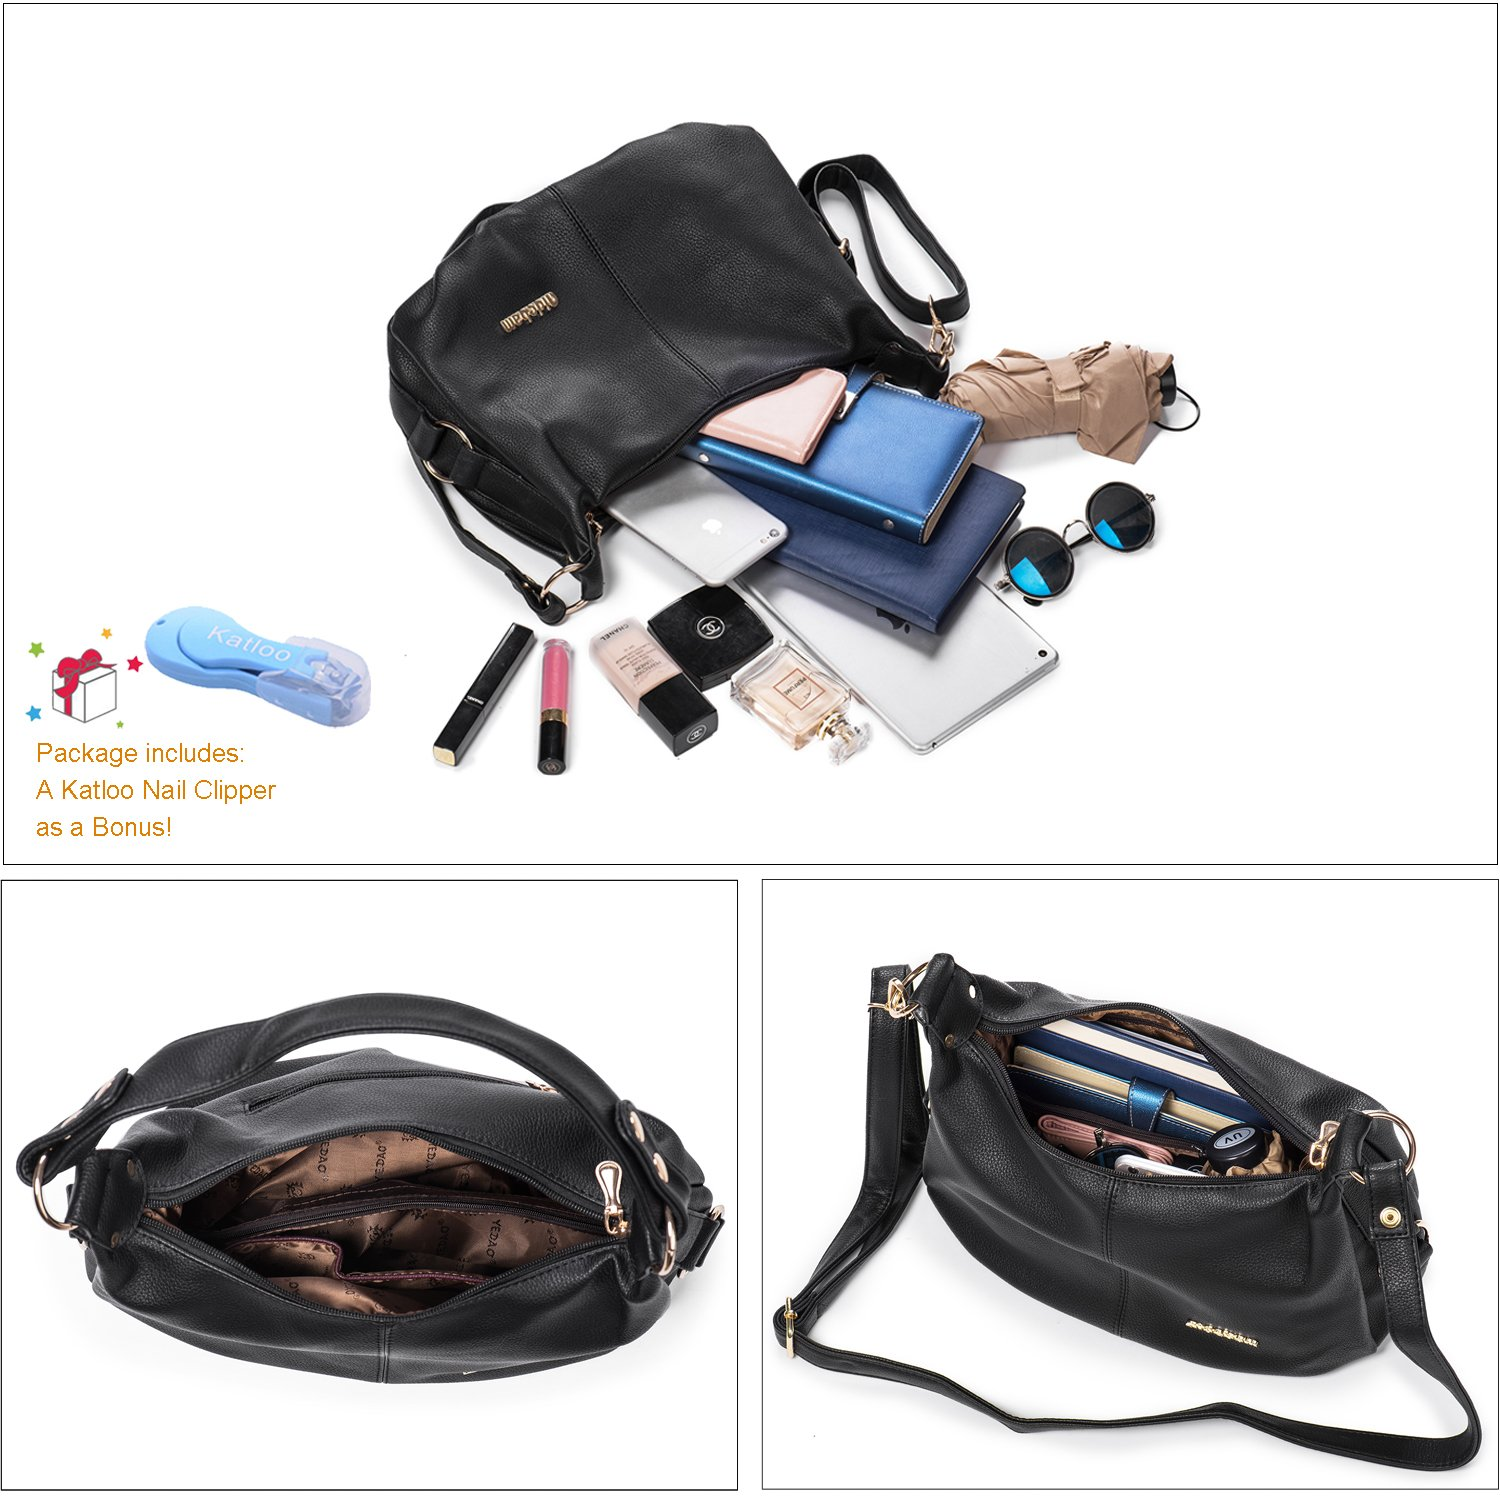 Shoulder Handbag for Women PU Leather Hobo Crossbody Purse Top Handle Bag Black + Katloo Nail Clipper by Katloo (Image #3)